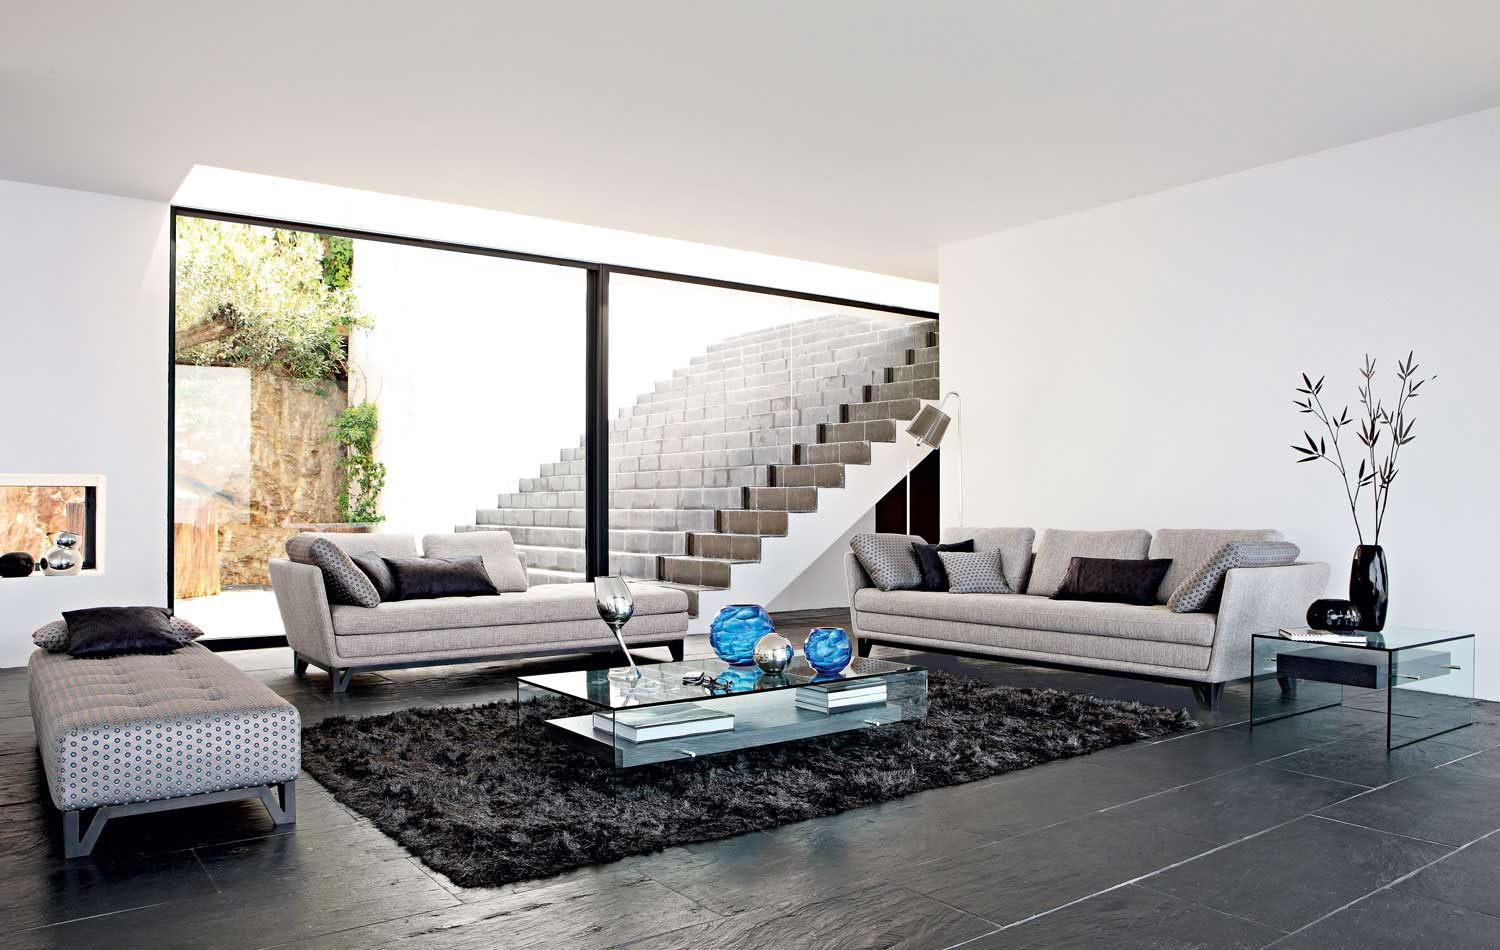 Living room inspiration 120 modern sofas by roche bobois for Sofas grandes modernos